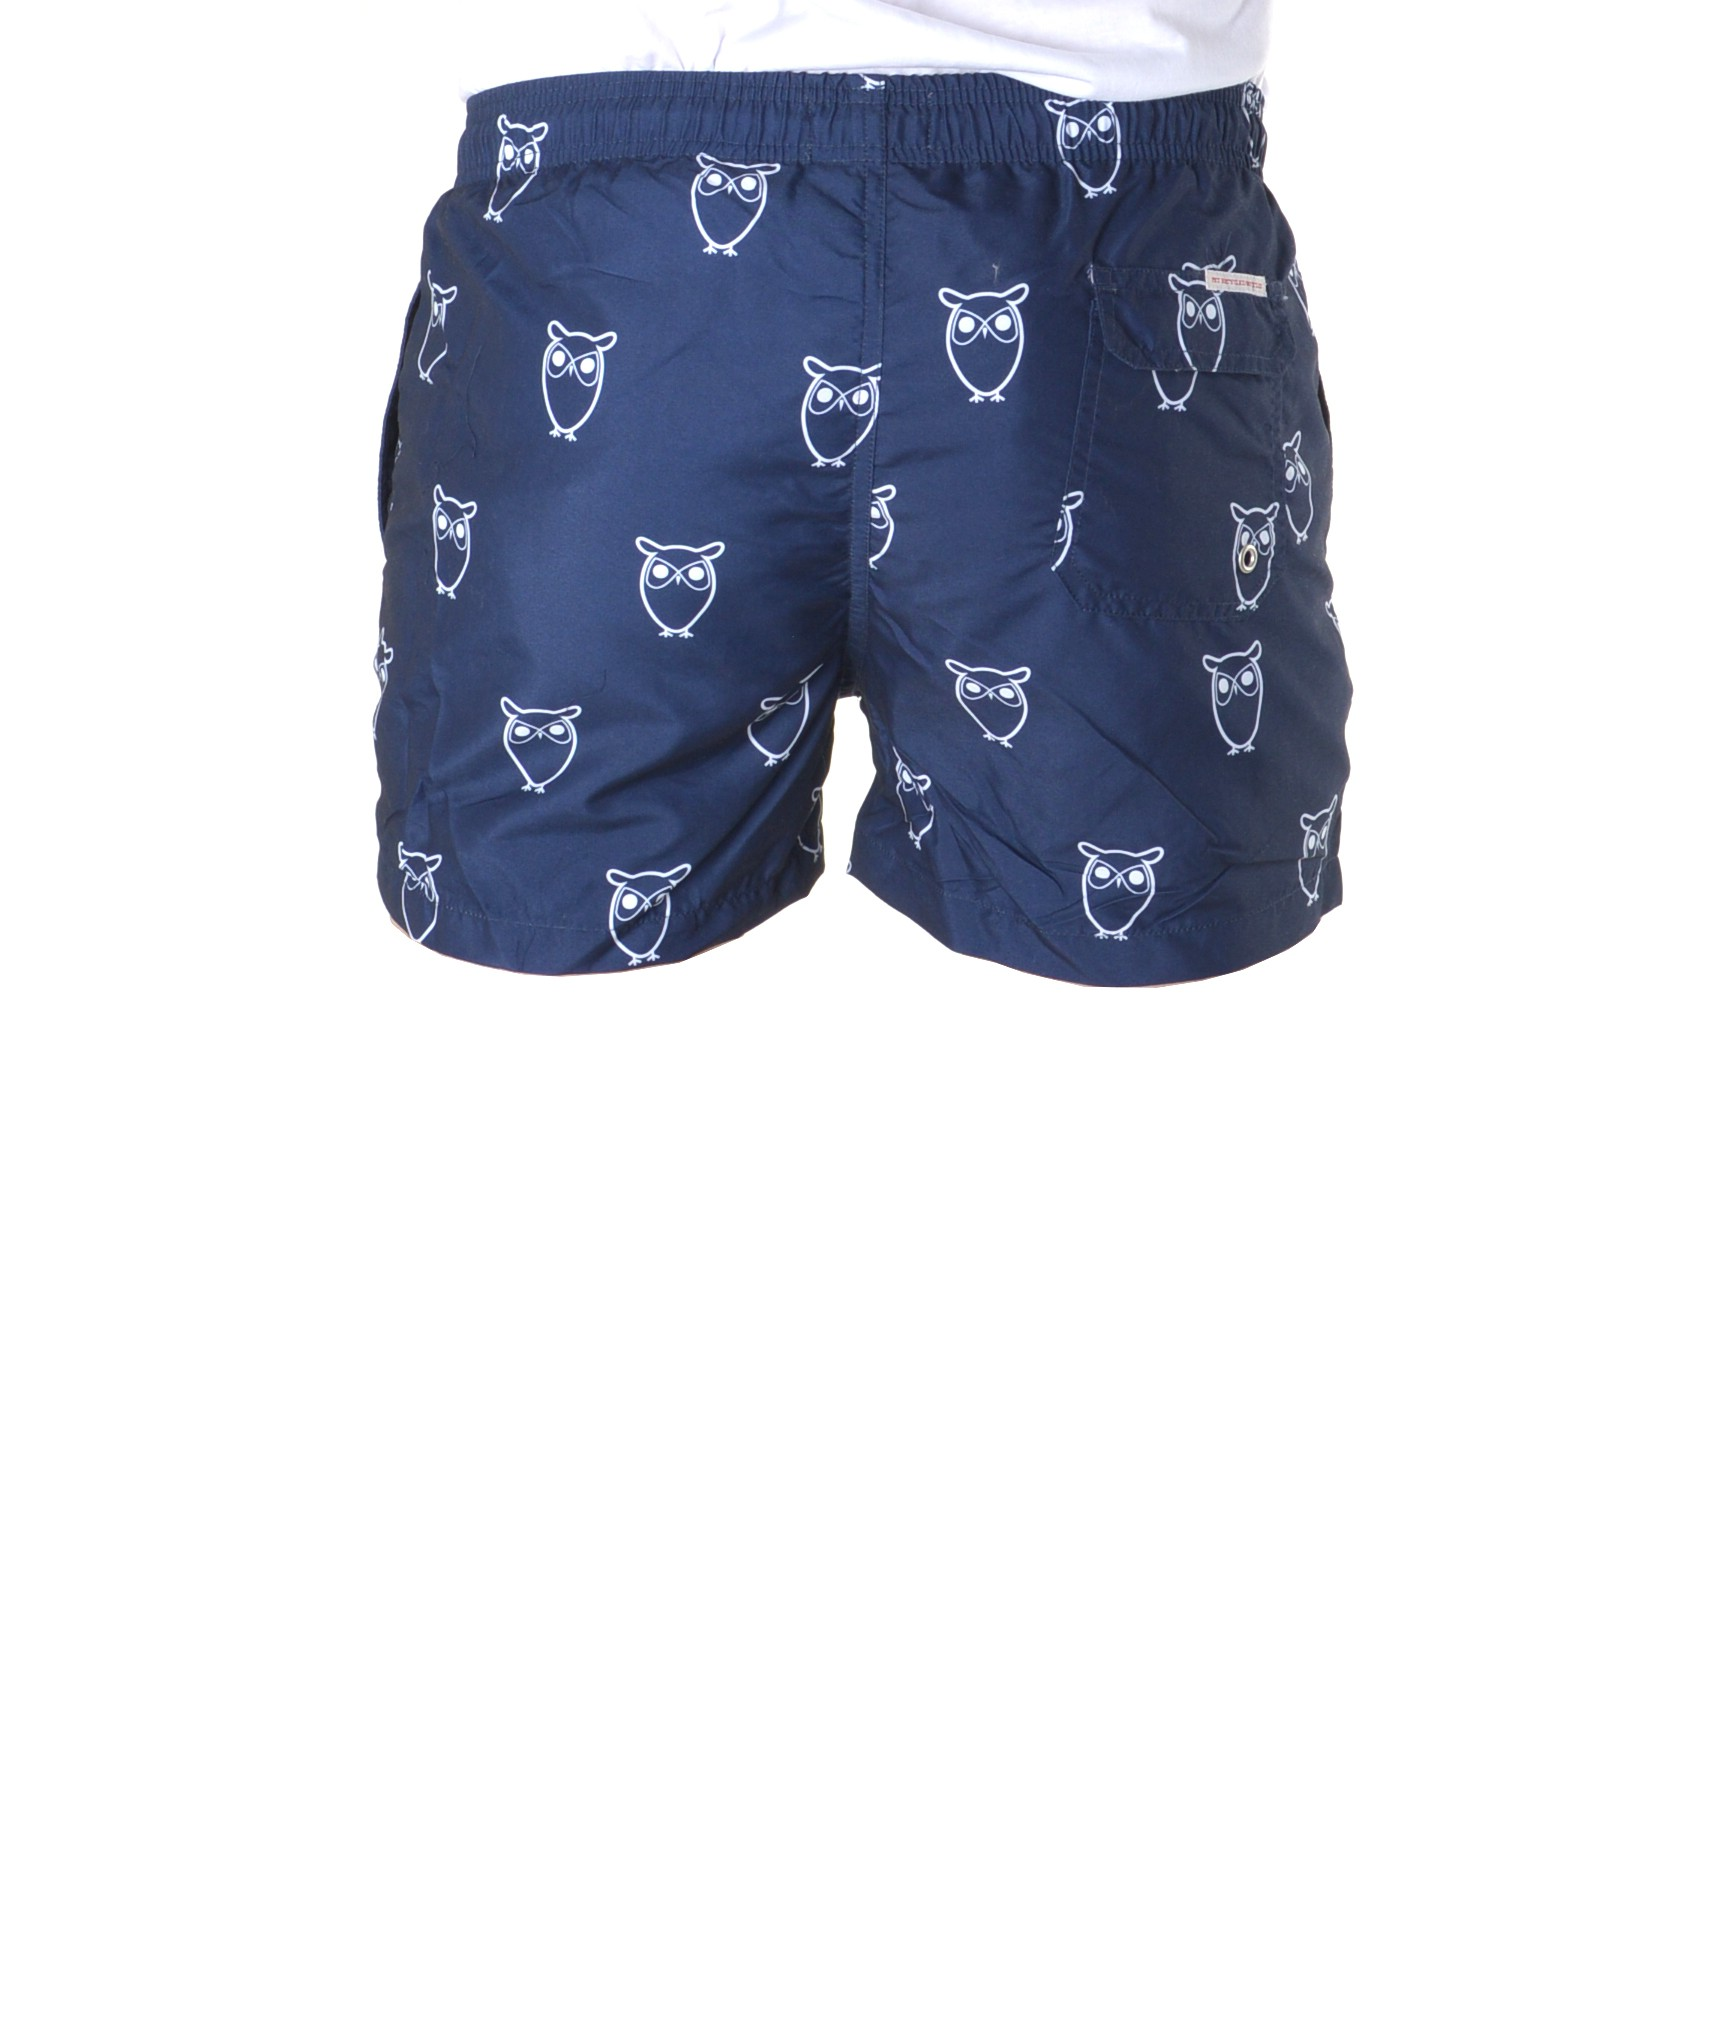 knowledge cotton apparel swim shorts w owl print herren glore. Black Bedroom Furniture Sets. Home Design Ideas